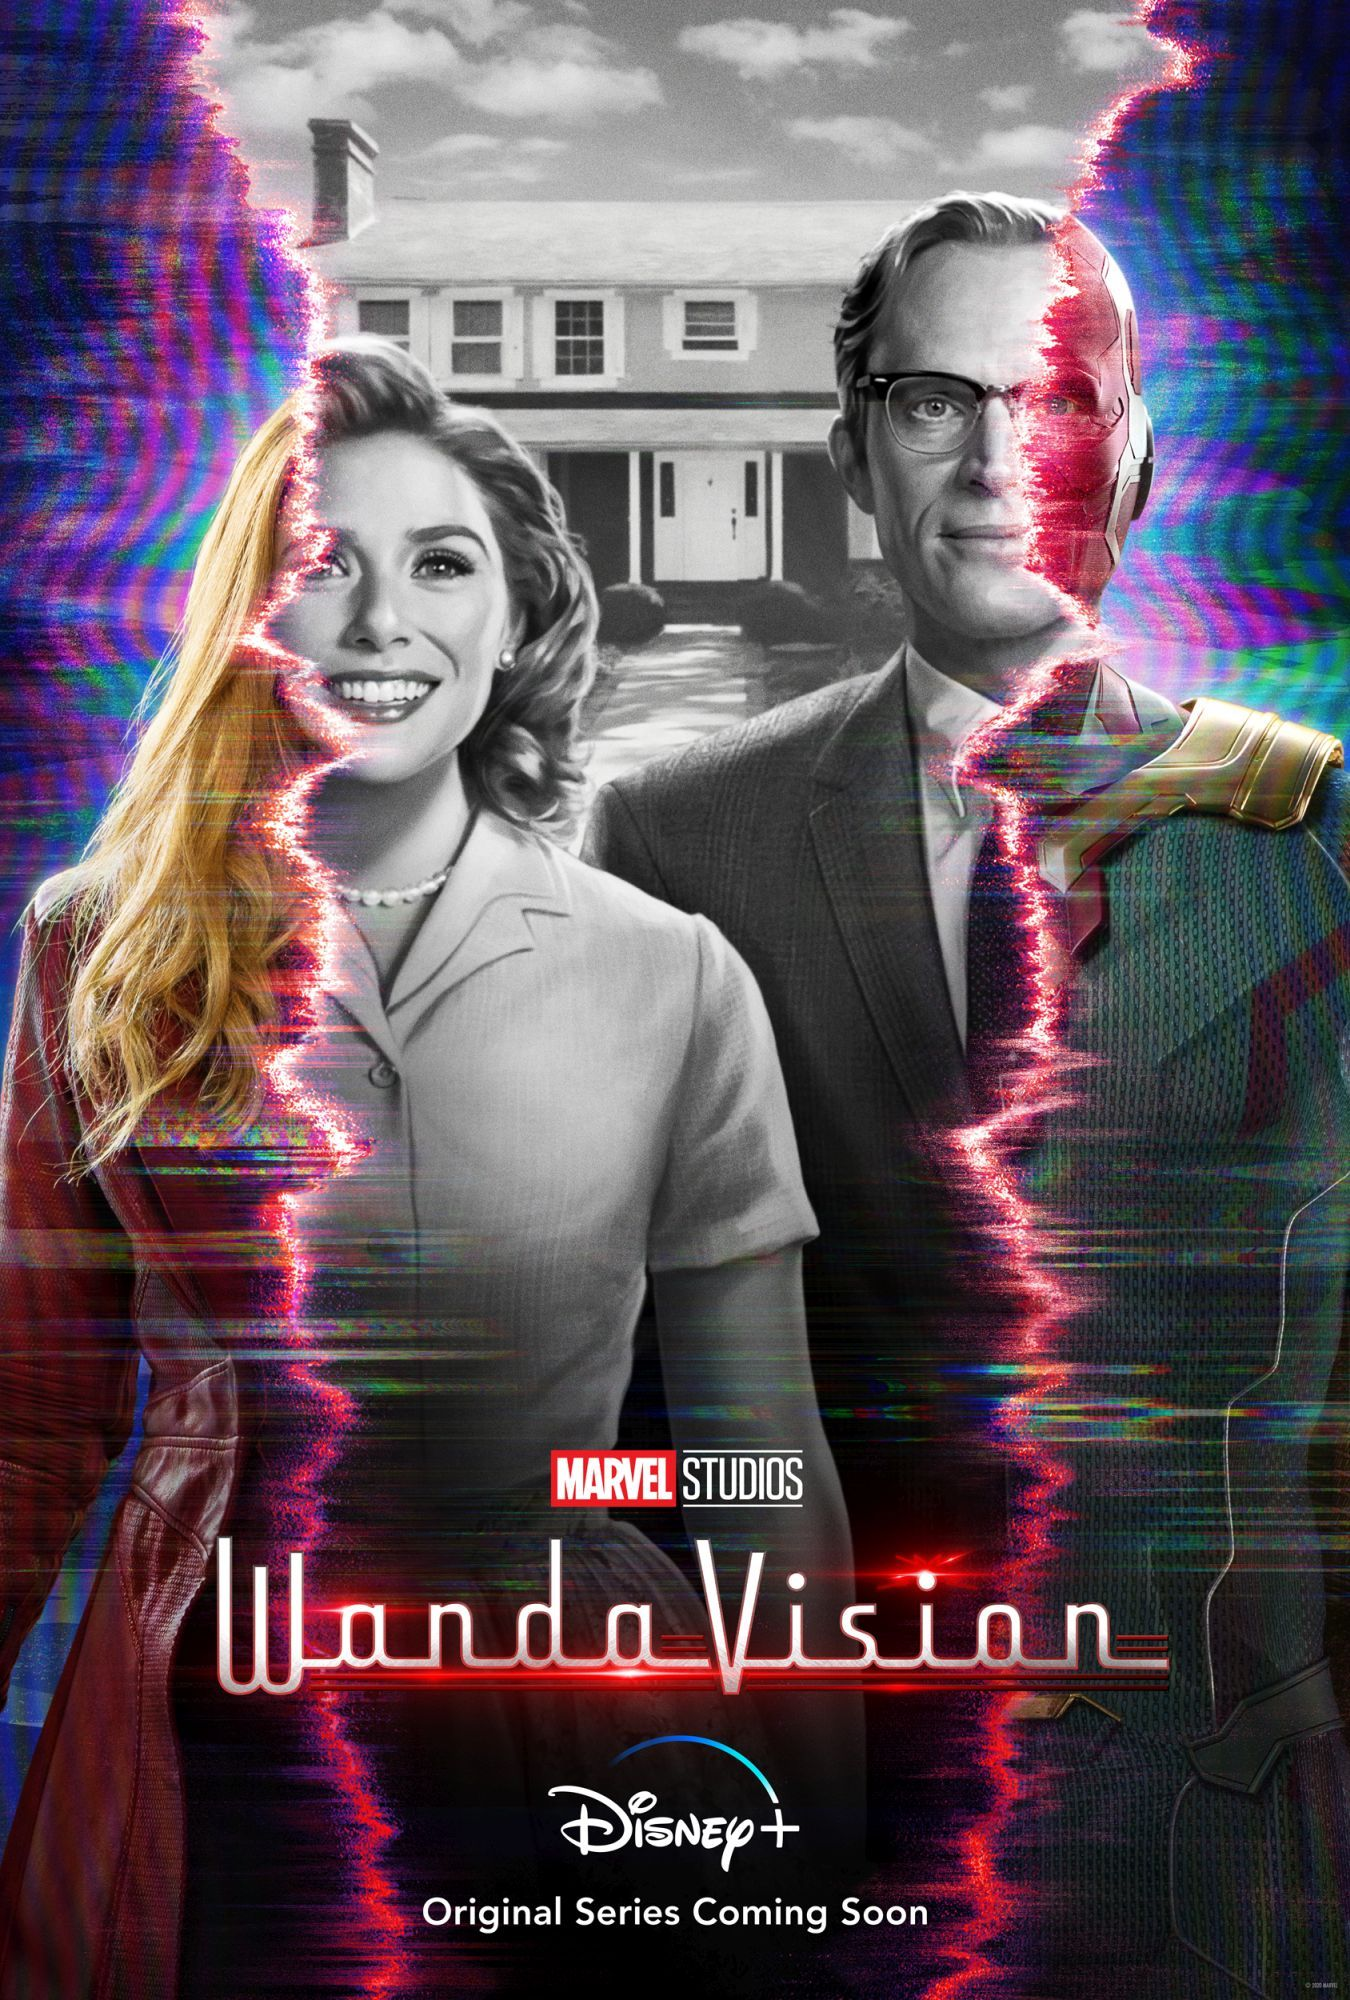 WandaVision review – does the Marvel show live up to the hype?